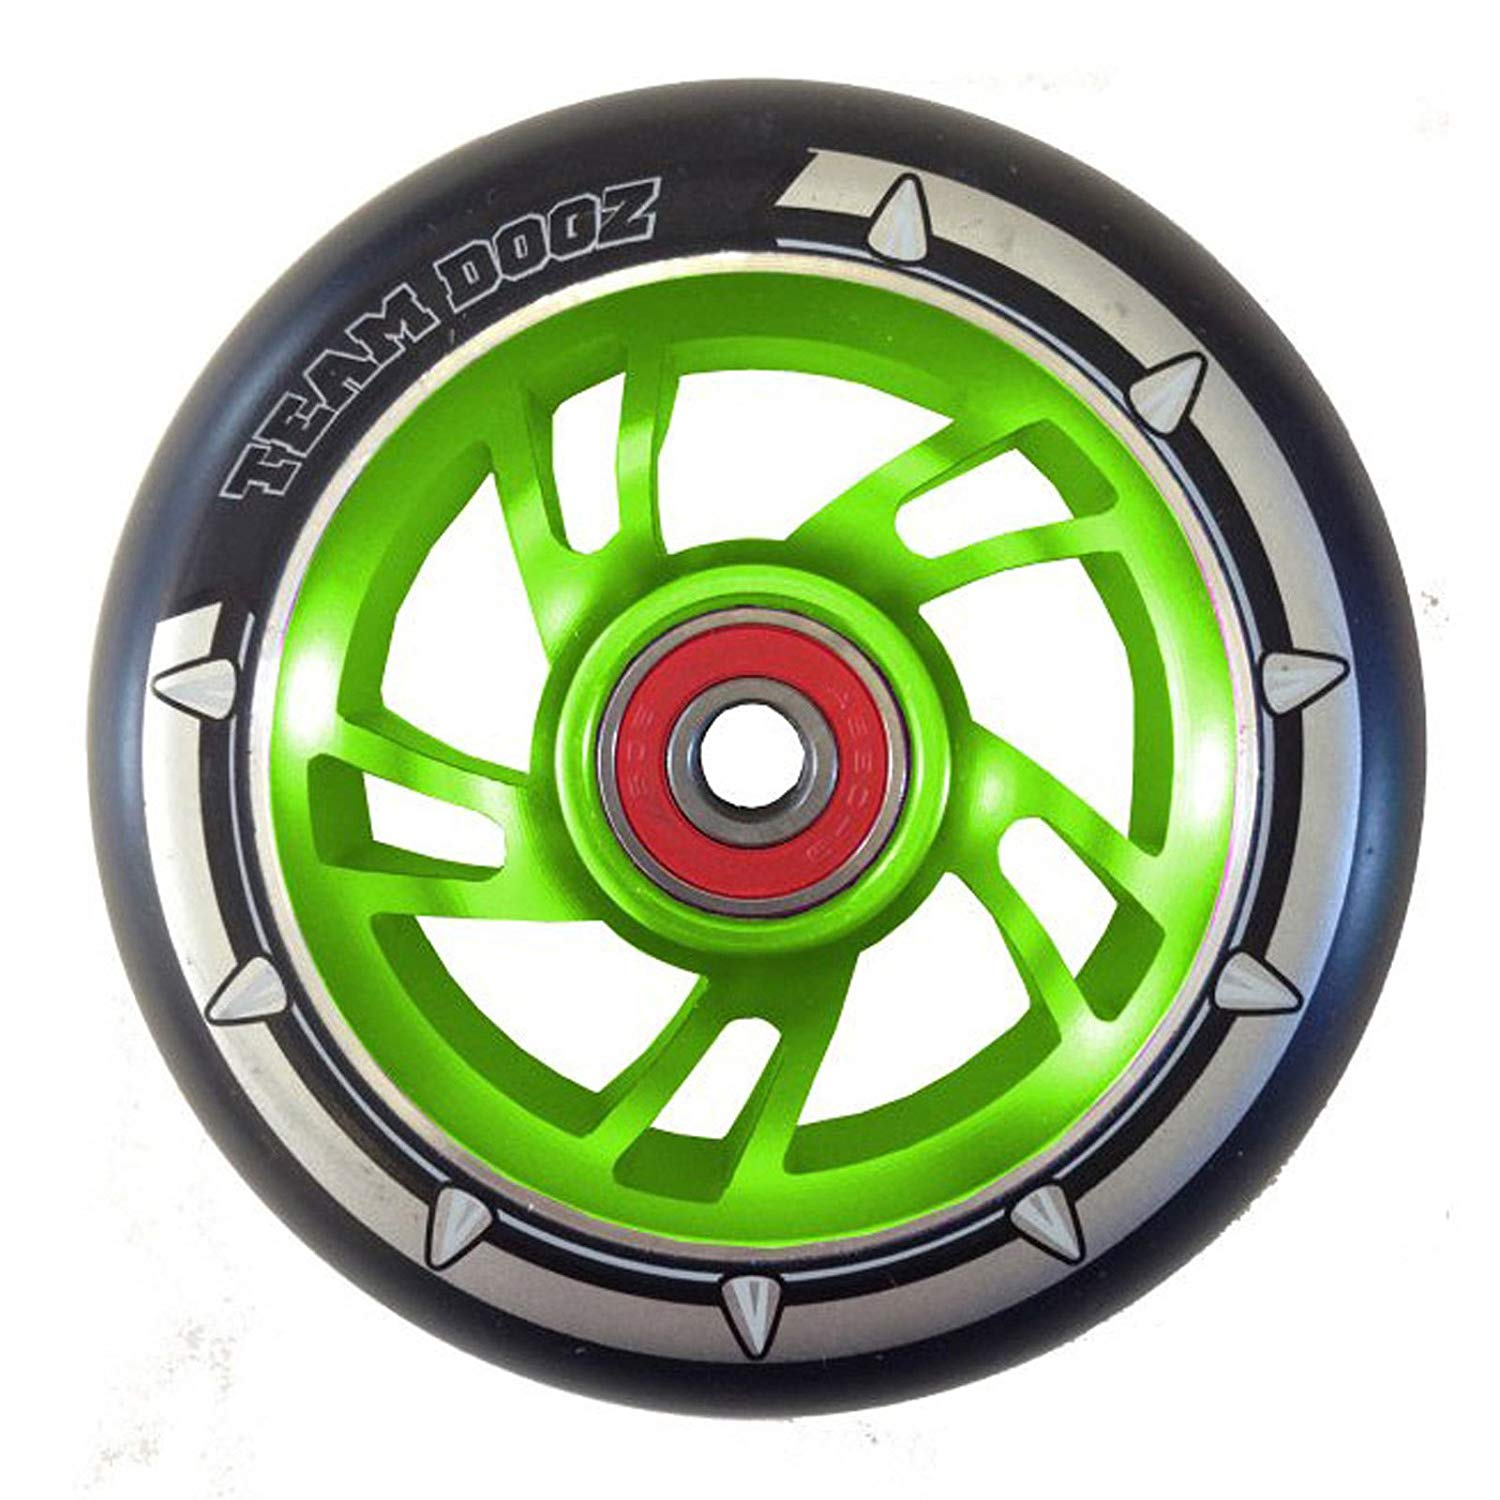 Team Dogz 100mm Swirl Scooter Wheel - Green Core with Black Tyre